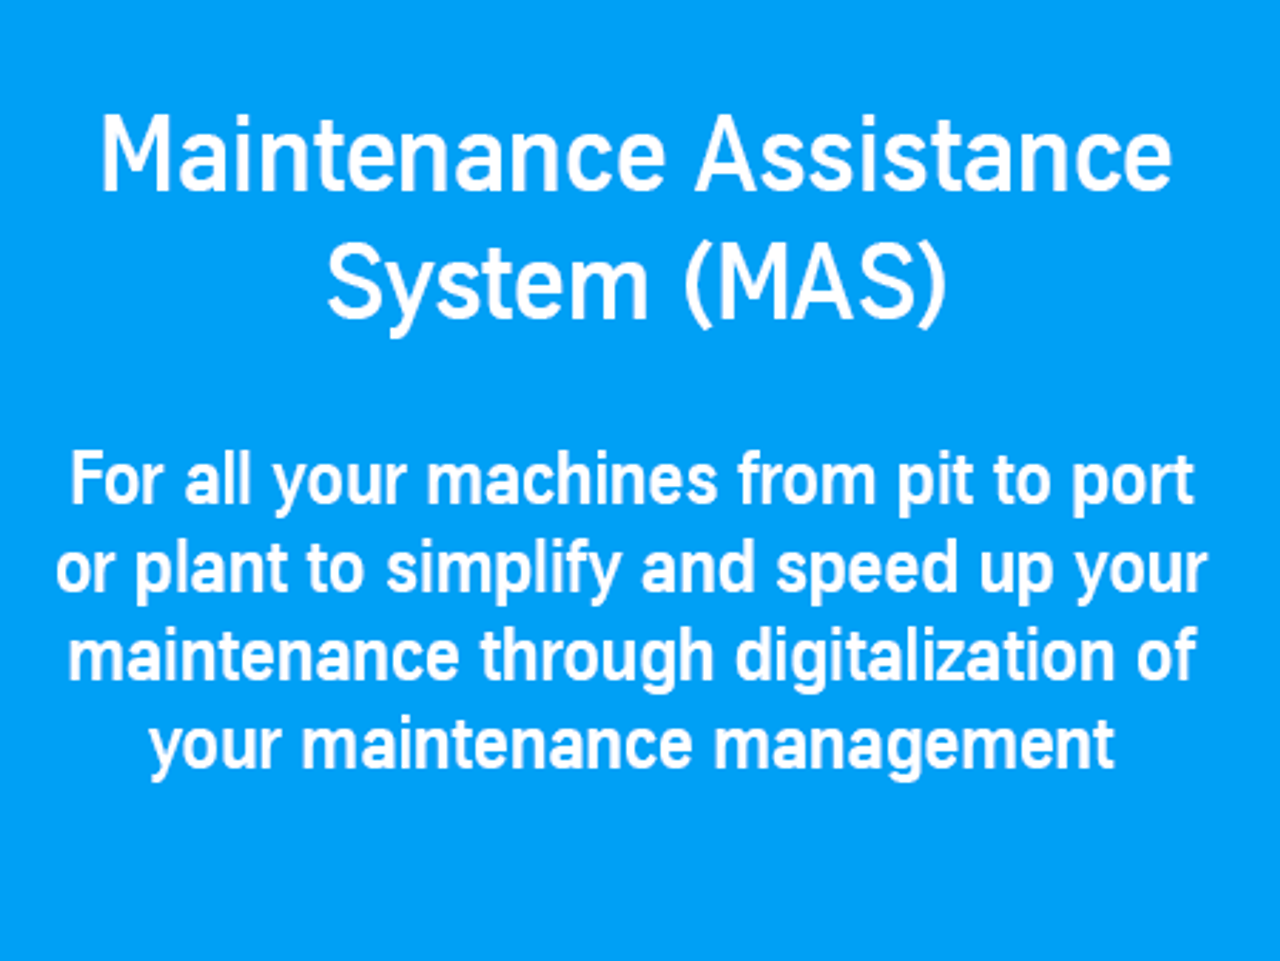 Simplify and speed up your maintenance through digitalization of your maintenance management with our Maintenance Assistance System (MAS)